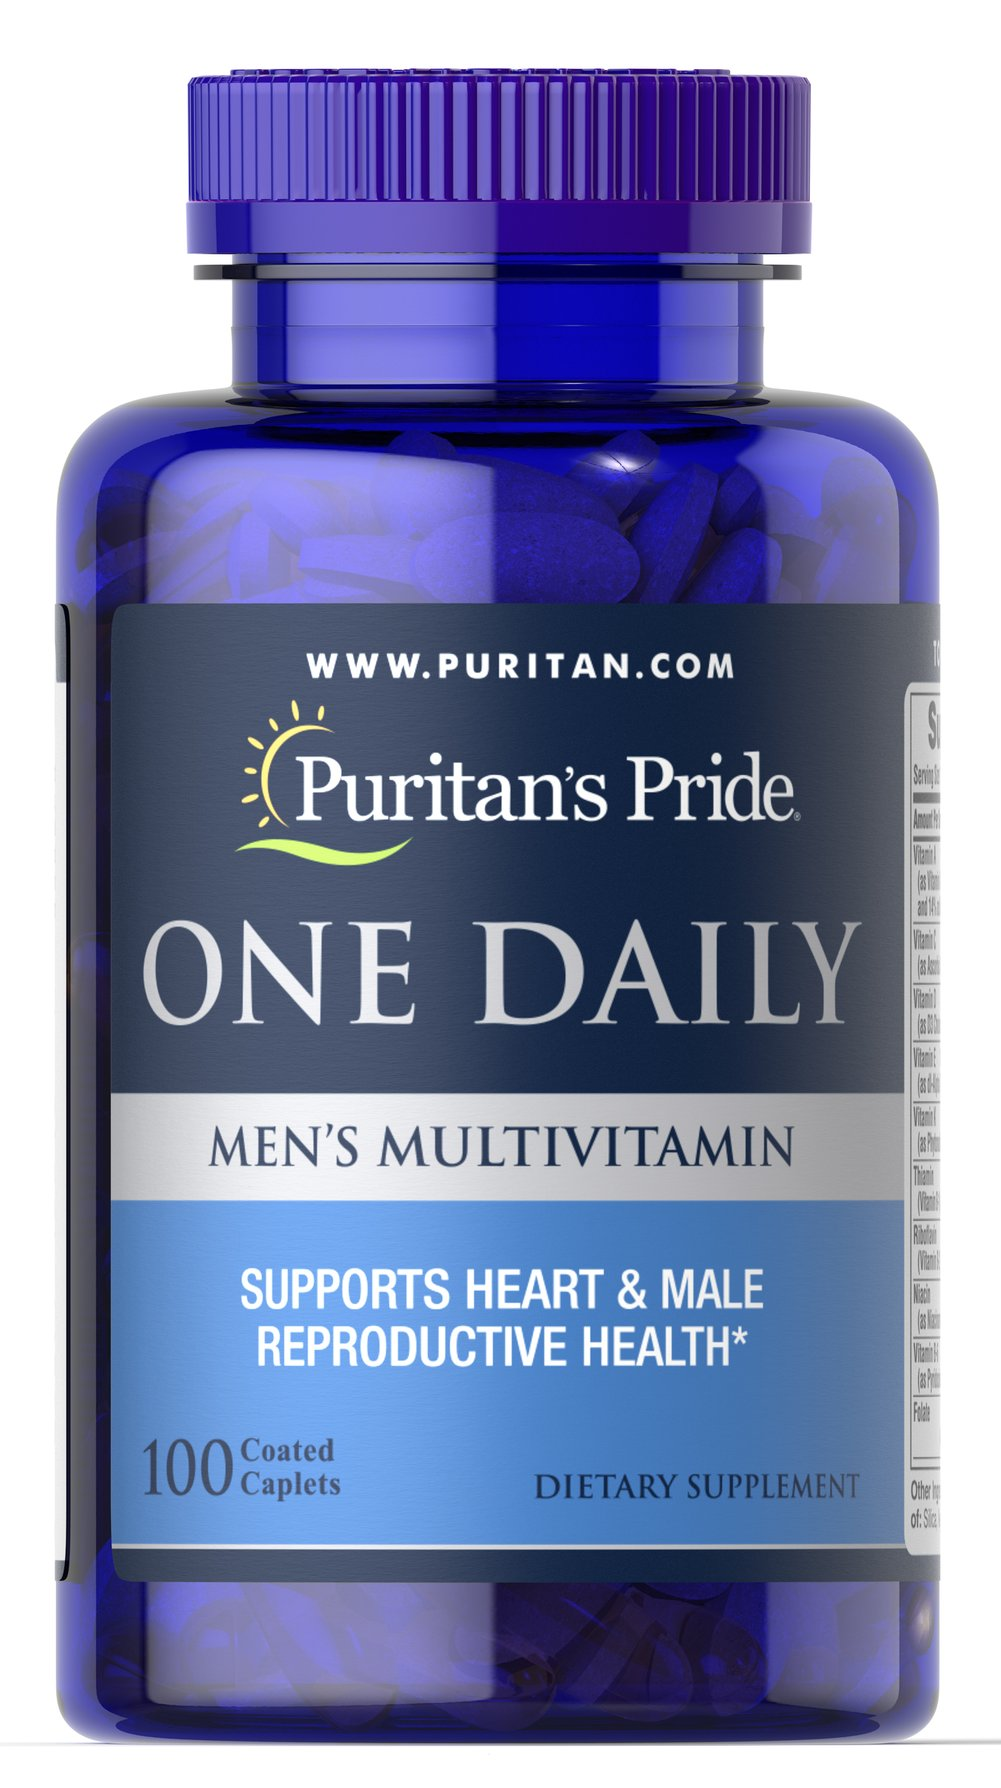 One Daily Men's Multivitamin with Lycopene <p>A Convenient multivitamins for the Man on the Go! Compare and Save!</p><p>Once-daily formula provides a complete array of vitamins and minerals</p><p>Includes 700 IU of Vitamin D to promote bone and immune system health, and 100% of the Daily Value of Zinc to aid with energy metabolism and male reproductive health**</p><p>Provides 300 mcg of Lycopene, a major carotenoid found in healthy prostate glands&lt